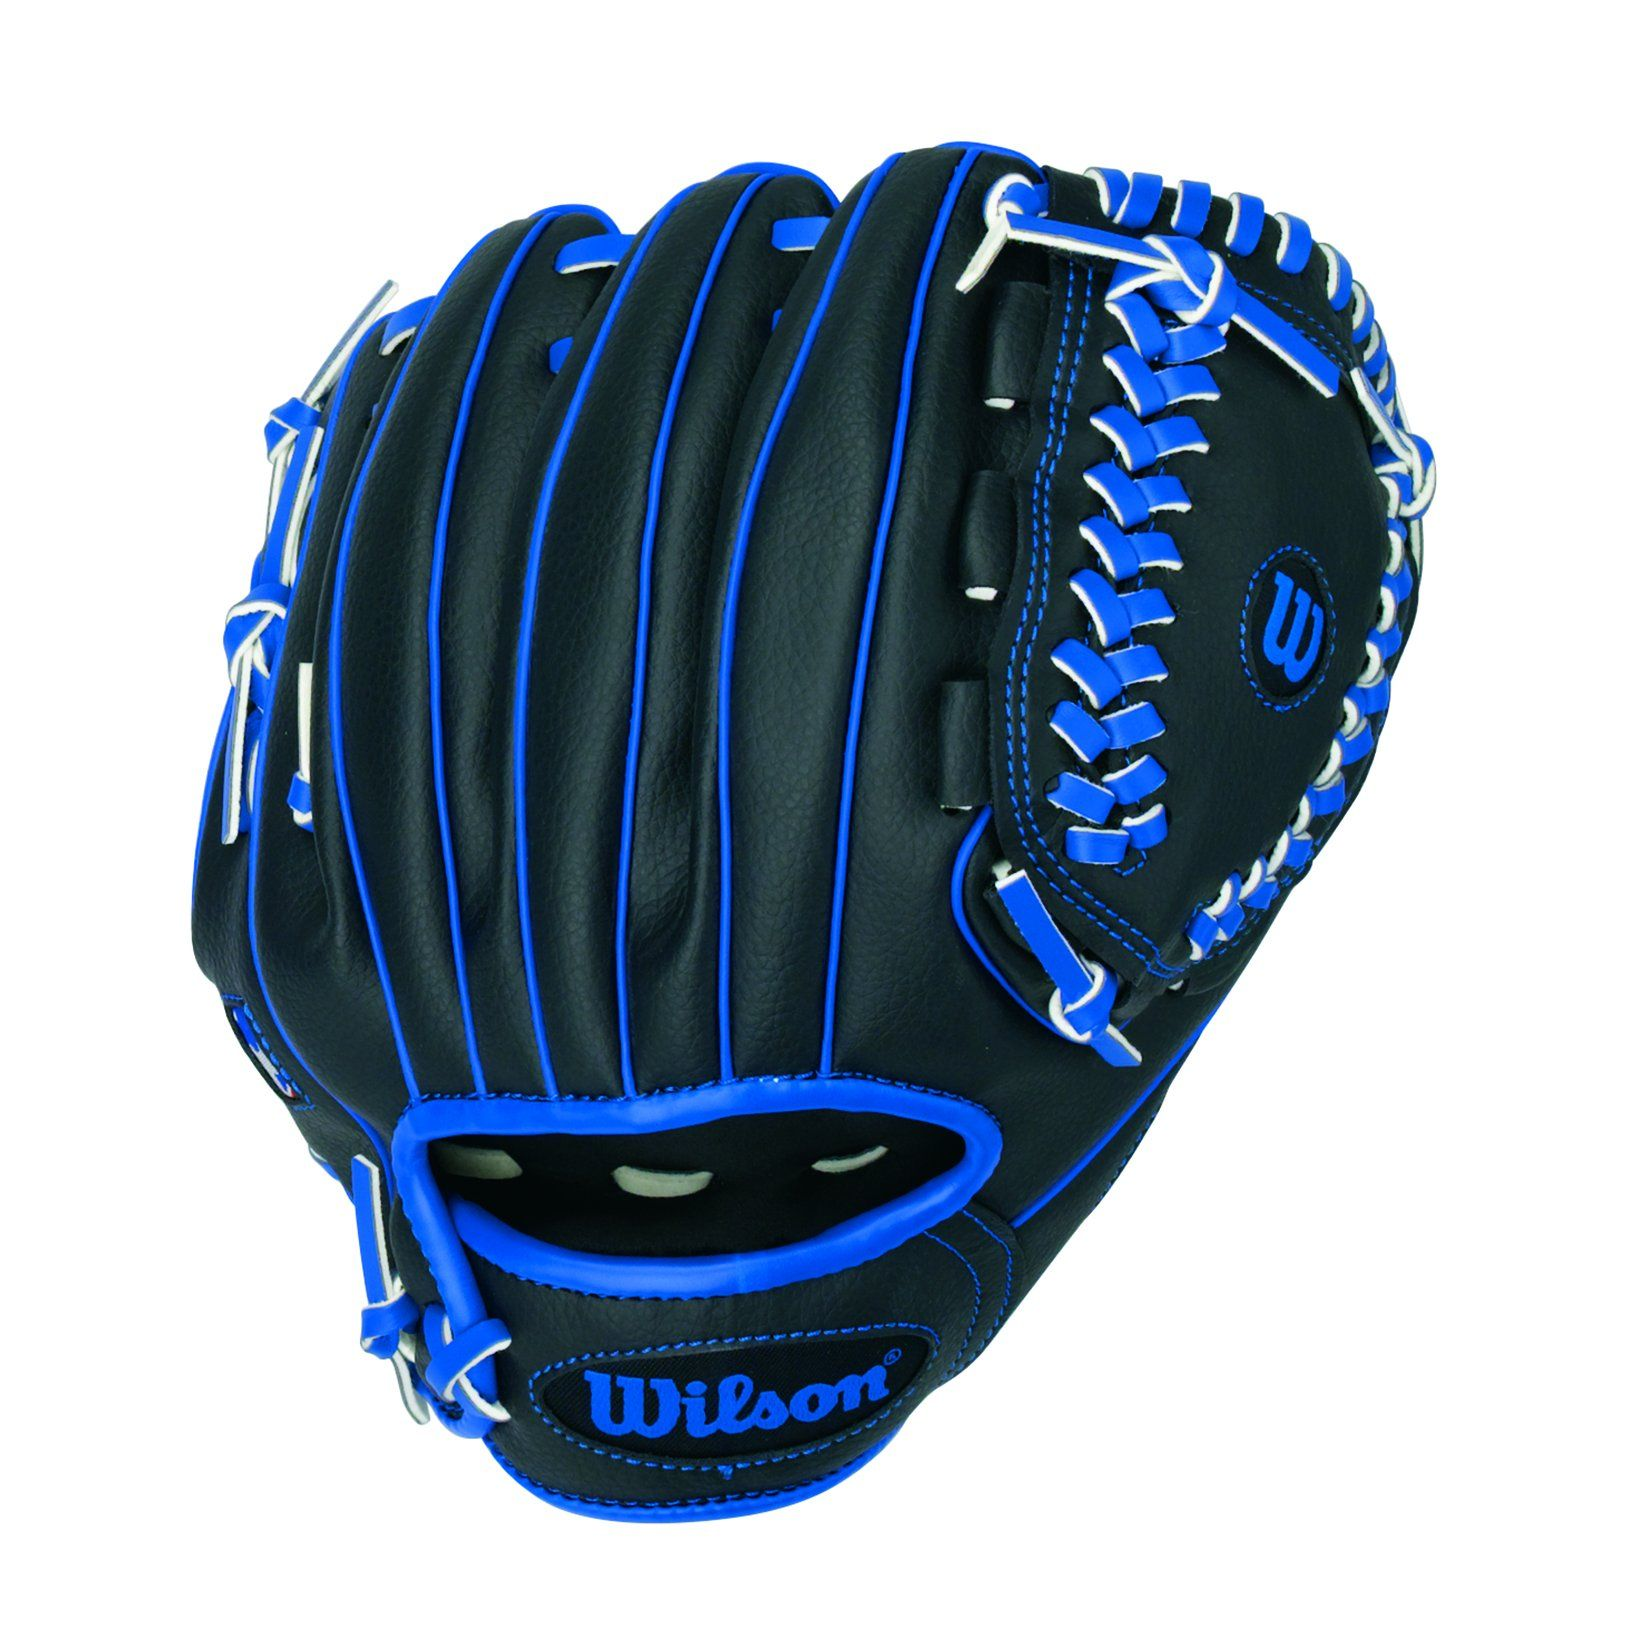 Wilson A200 Boy Glove Right Hand Throw 10 Black Blue 10 Model All Positions Victory Web G Youth Baseball Gloves Baseball Glove Vintage Baseball Gloves